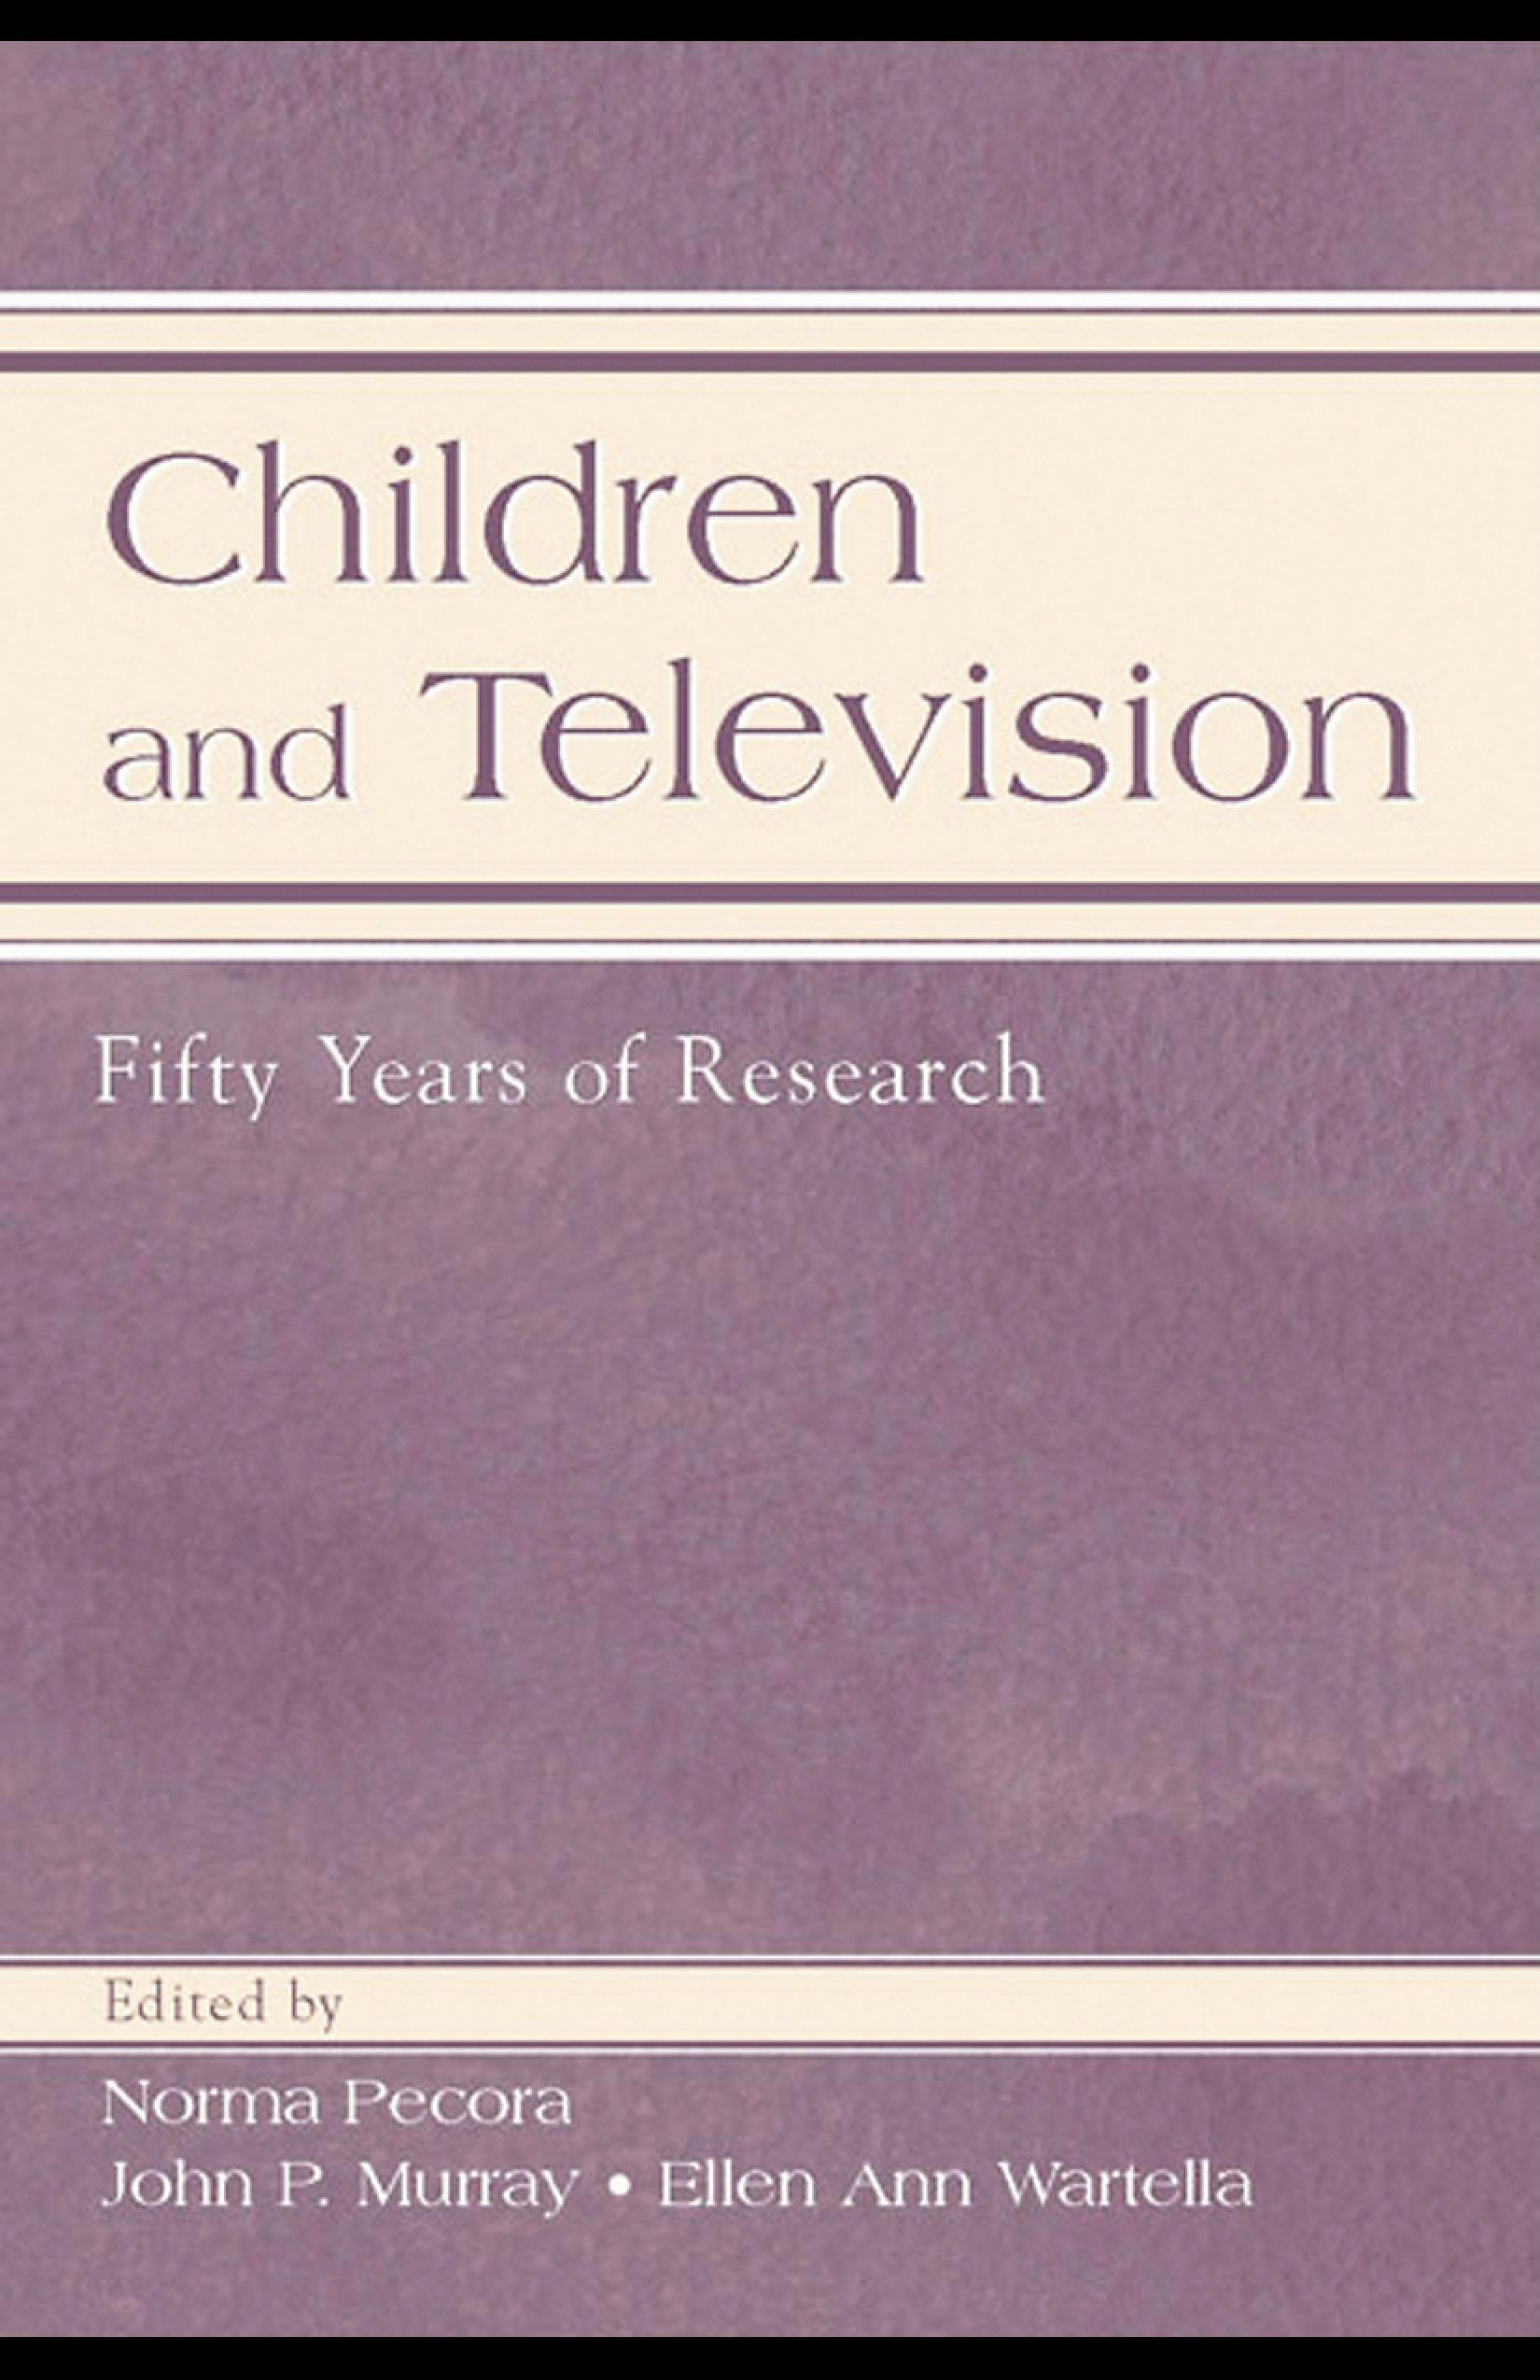 Children and Television: Fifty Years of Research By: Norma Pecora